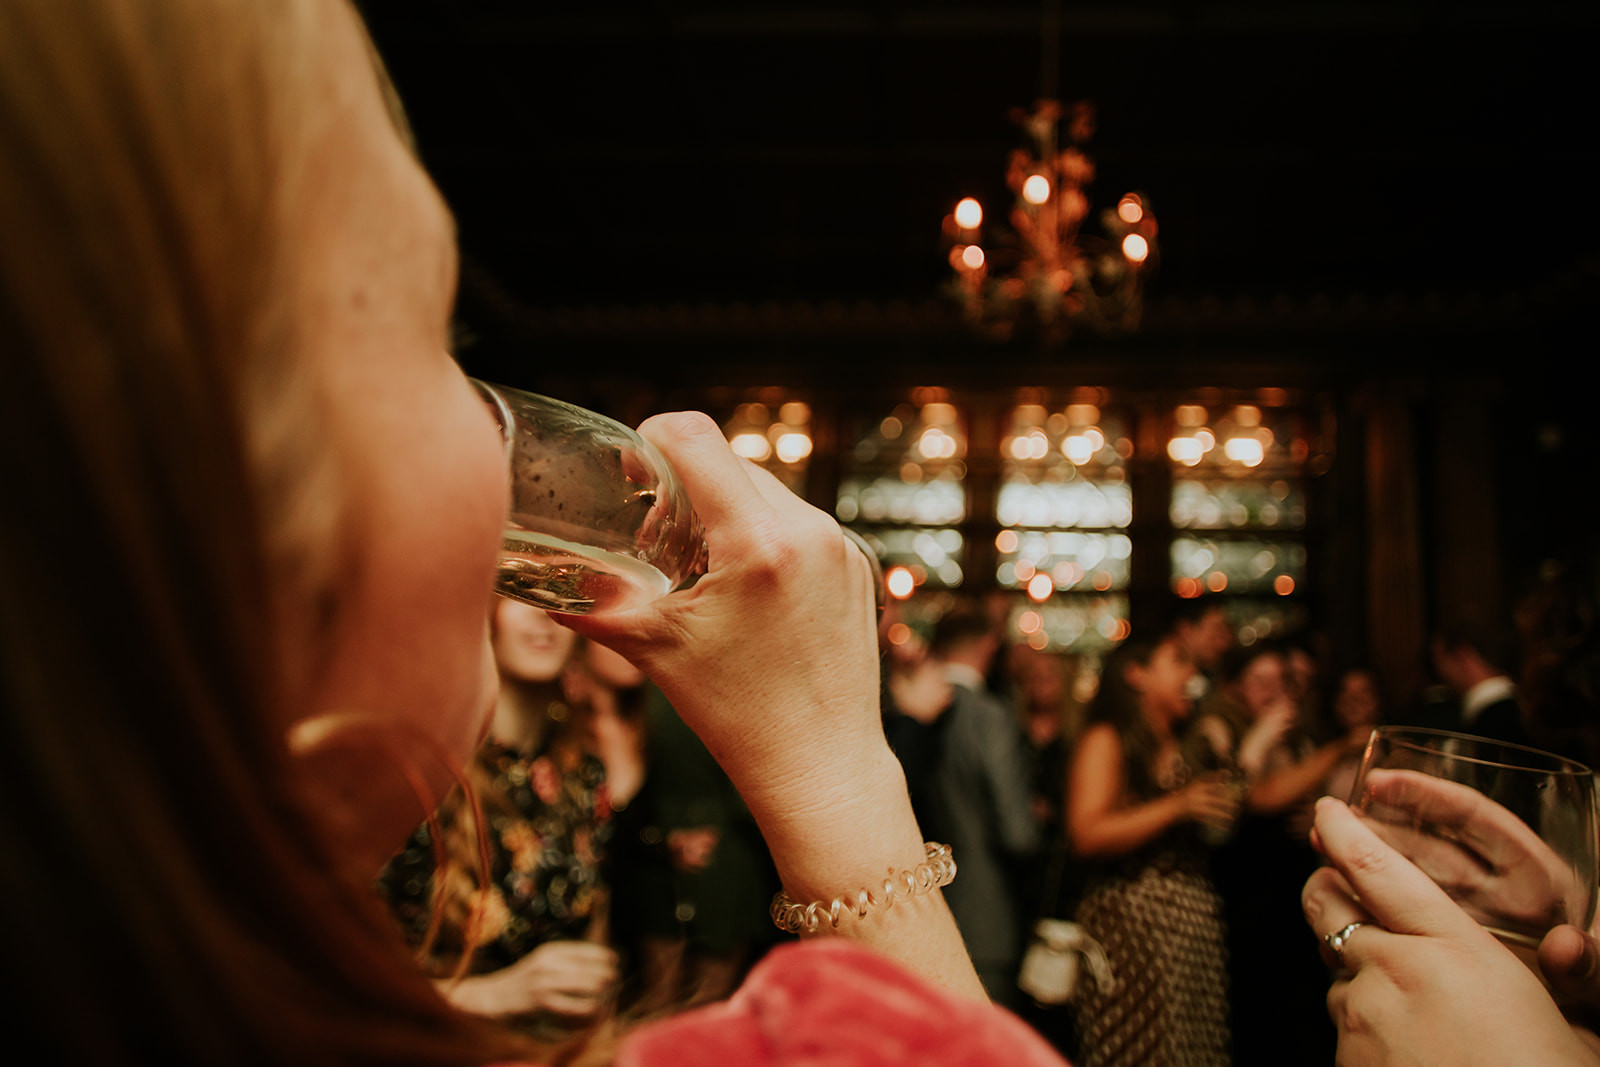 a woman drinking champagne